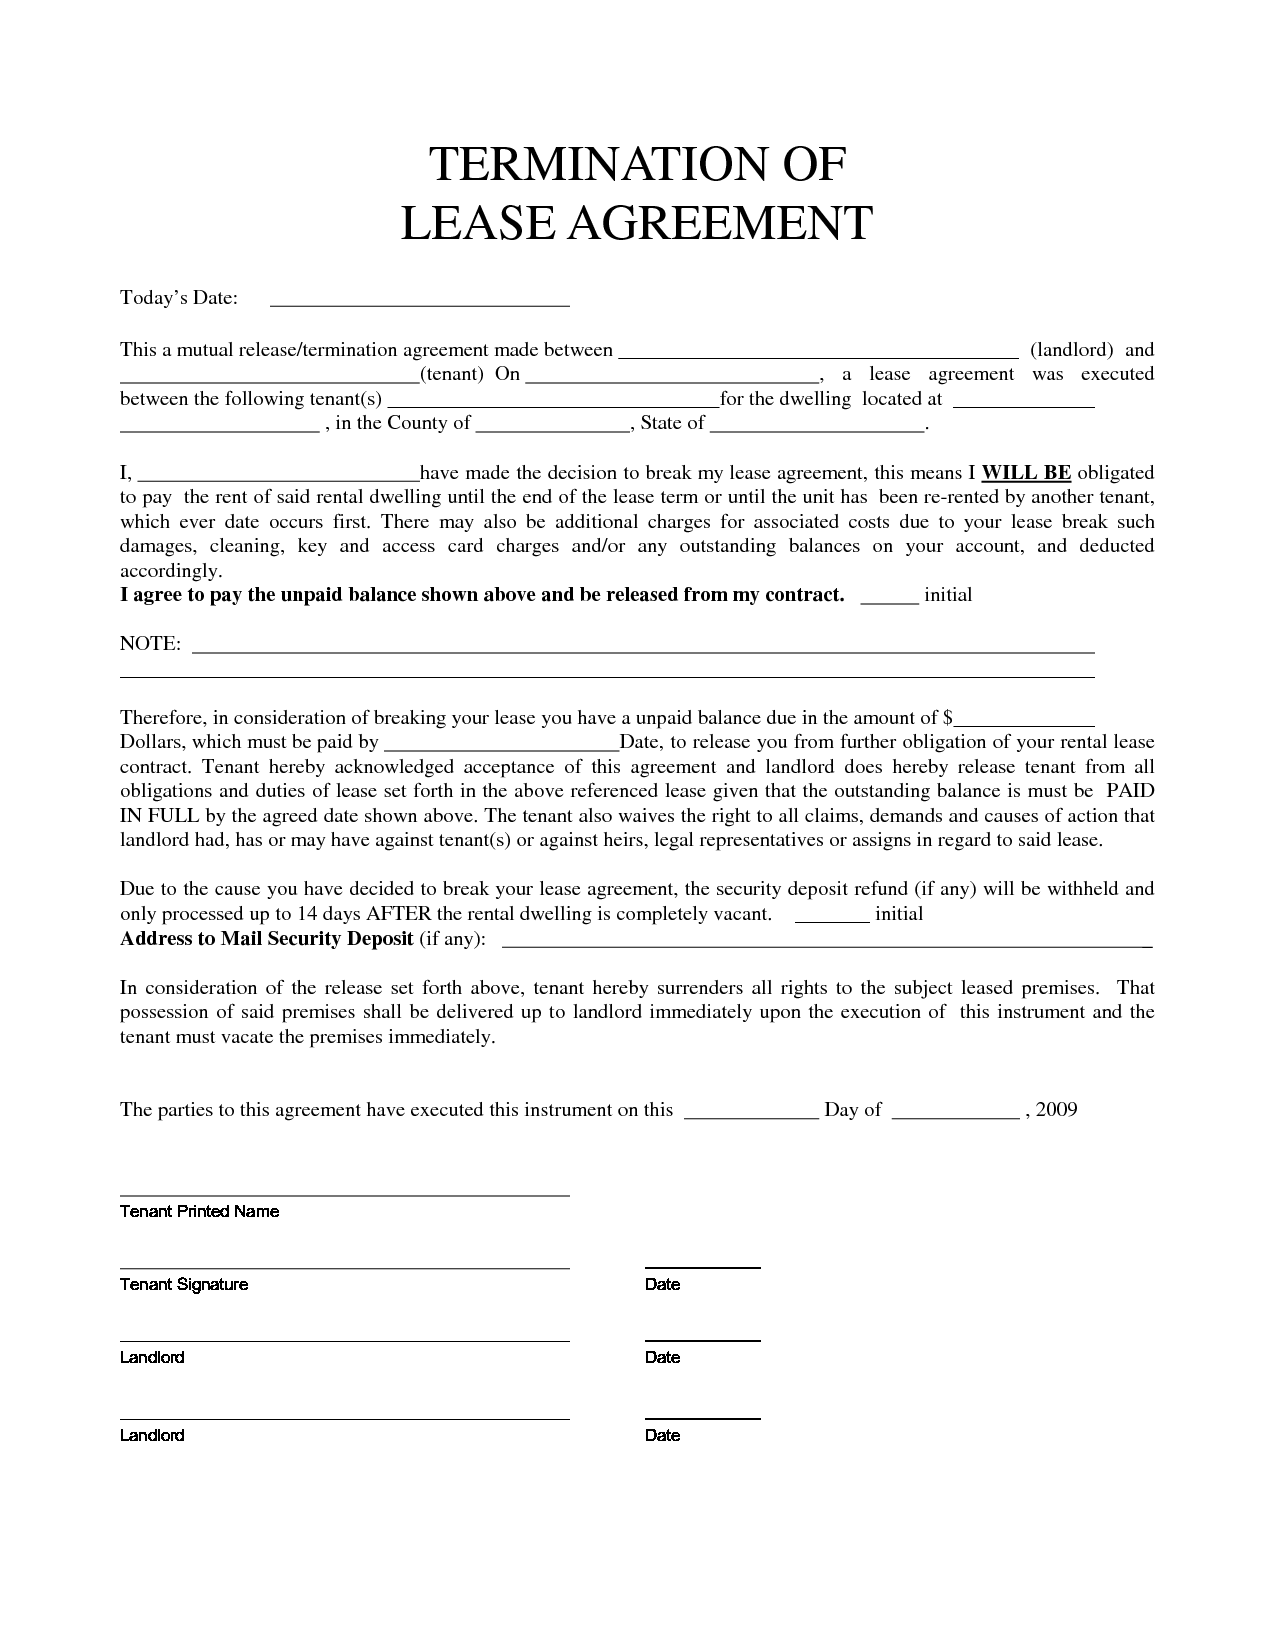 personal property rental agreement forms property rentals direct termination of lease agreement form. Resume Example. Resume CV Cover Letter